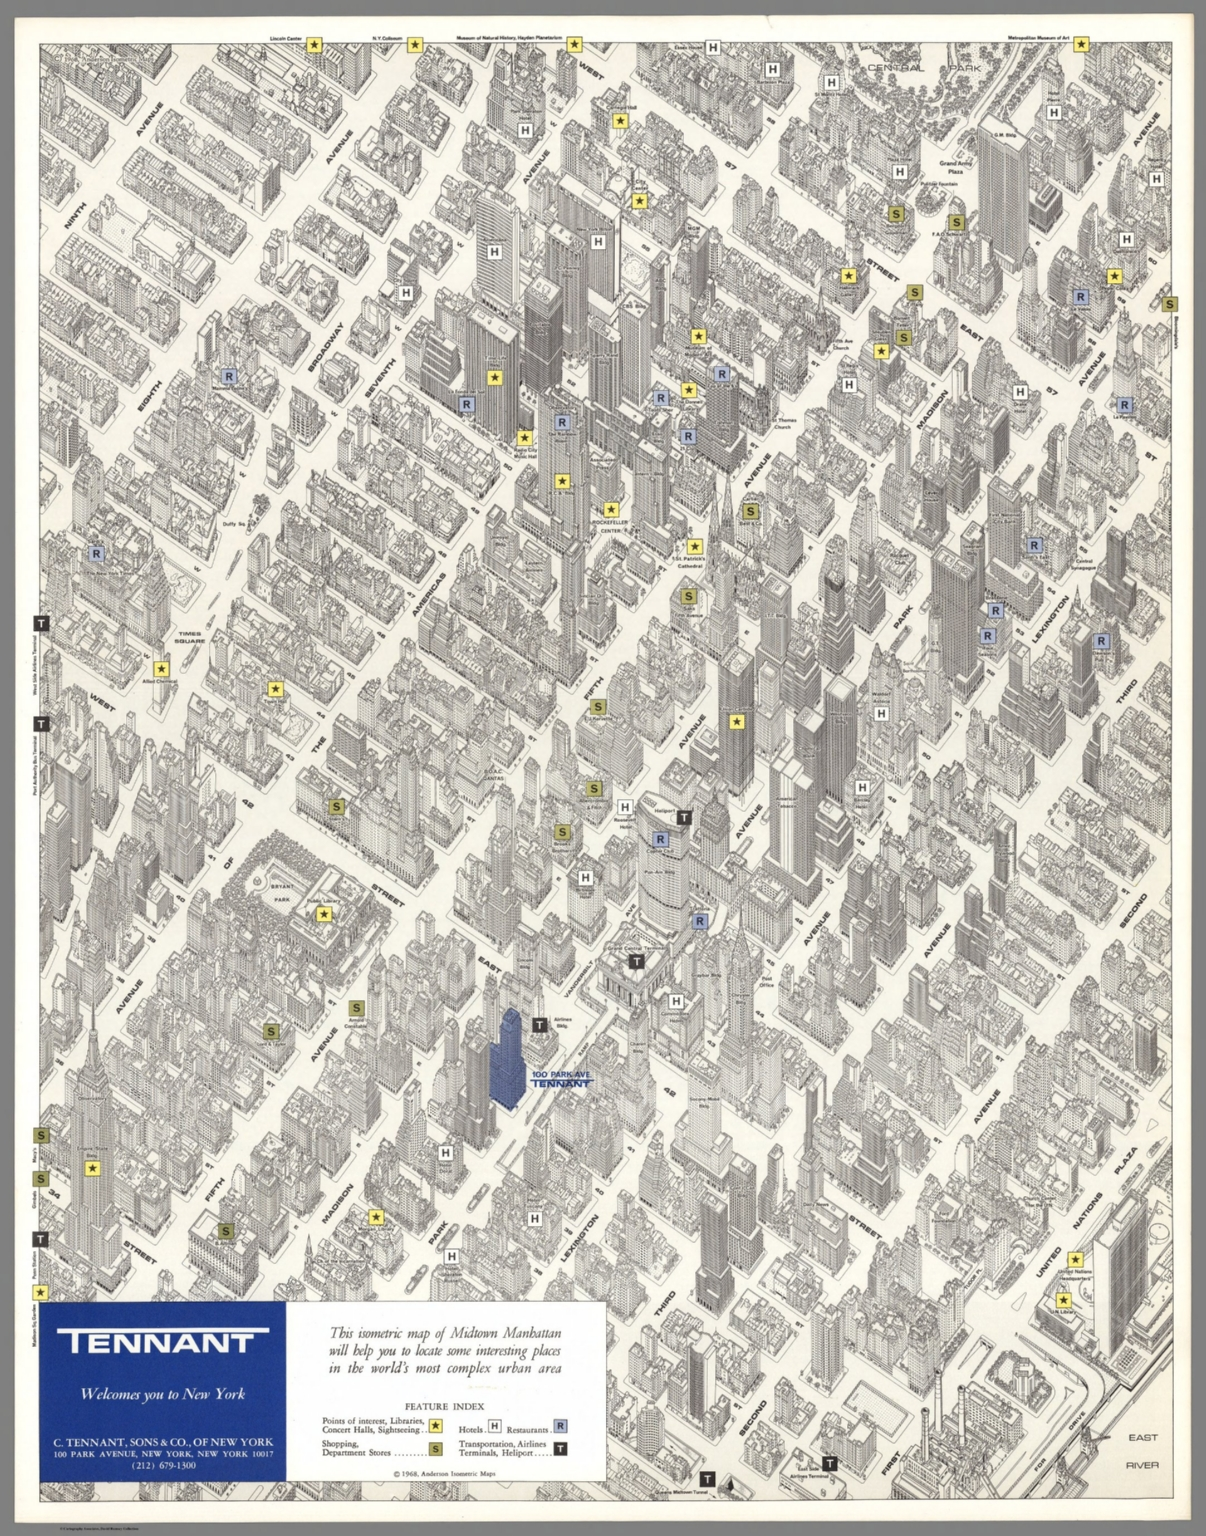 Tennant welcomes you to New York Anderson Isometric Maps 1968